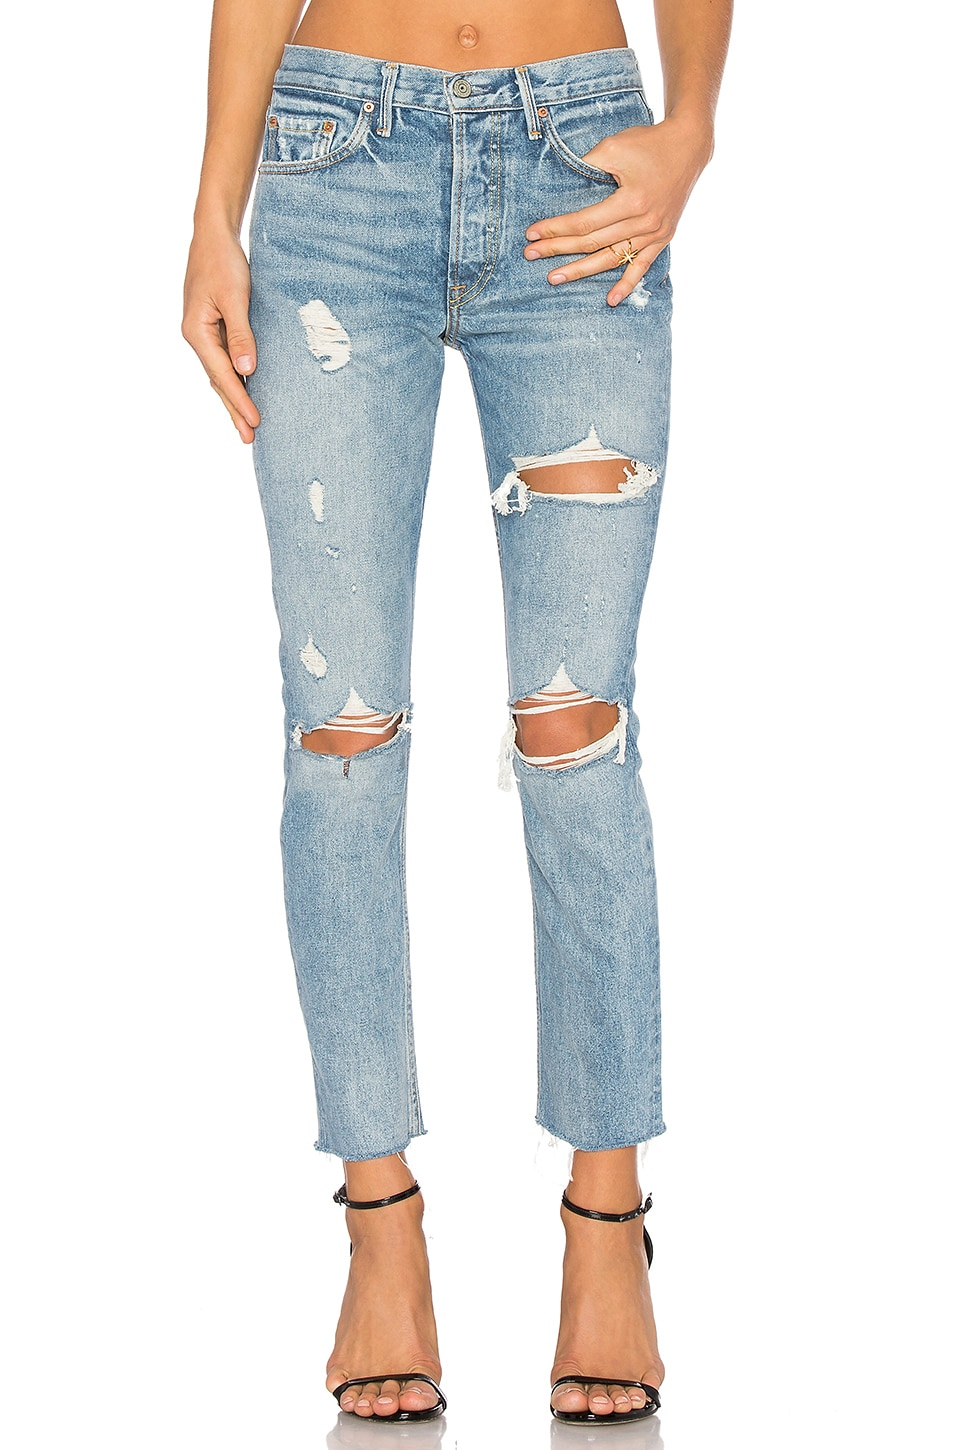 GRLFRND PETITE Karolina High-Rise Skinny Jean in A Little More Love